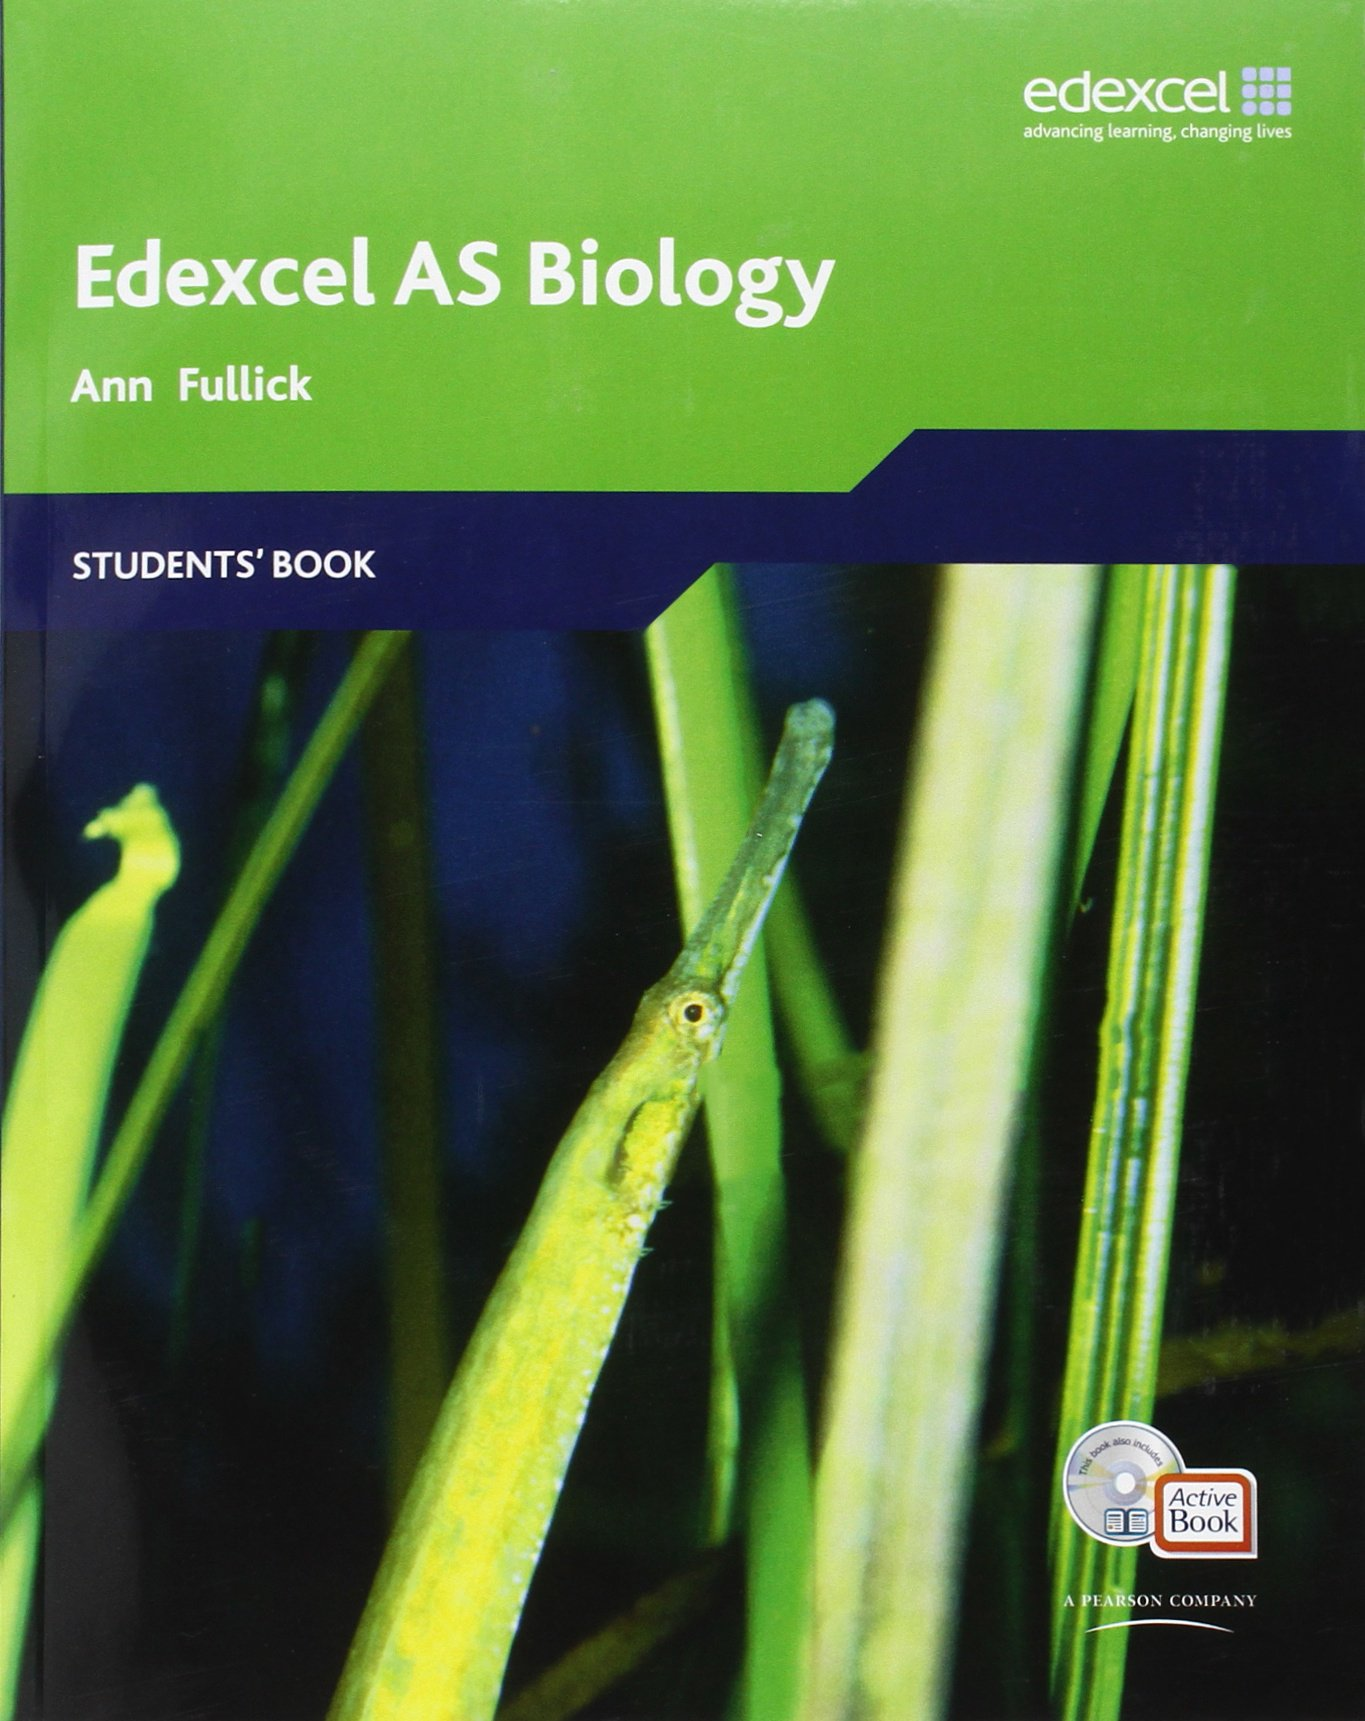 edexcel gce as biology coursework Covering biological laws, theories, models and their practical applications, the edexcel international advanced level in biology is designed to be studied over cv writing service basingstoke years, with the option of a one-year as level course.